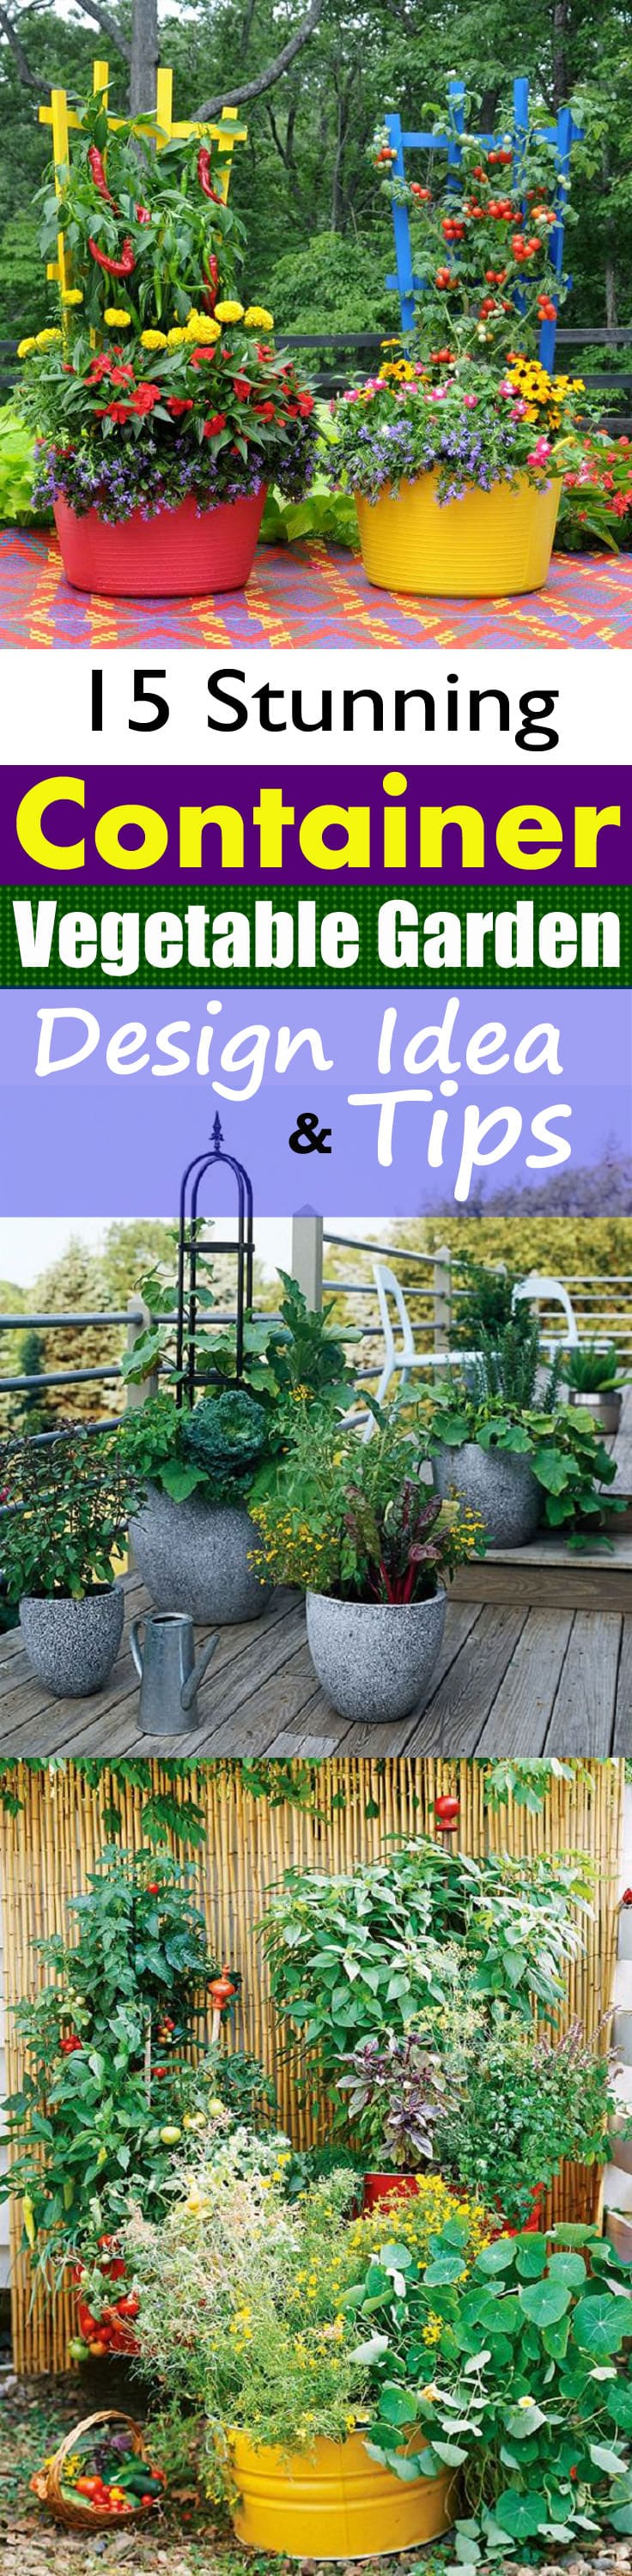 15 Stunning Container Vegetable Garden Design Ideas Tips Balcony